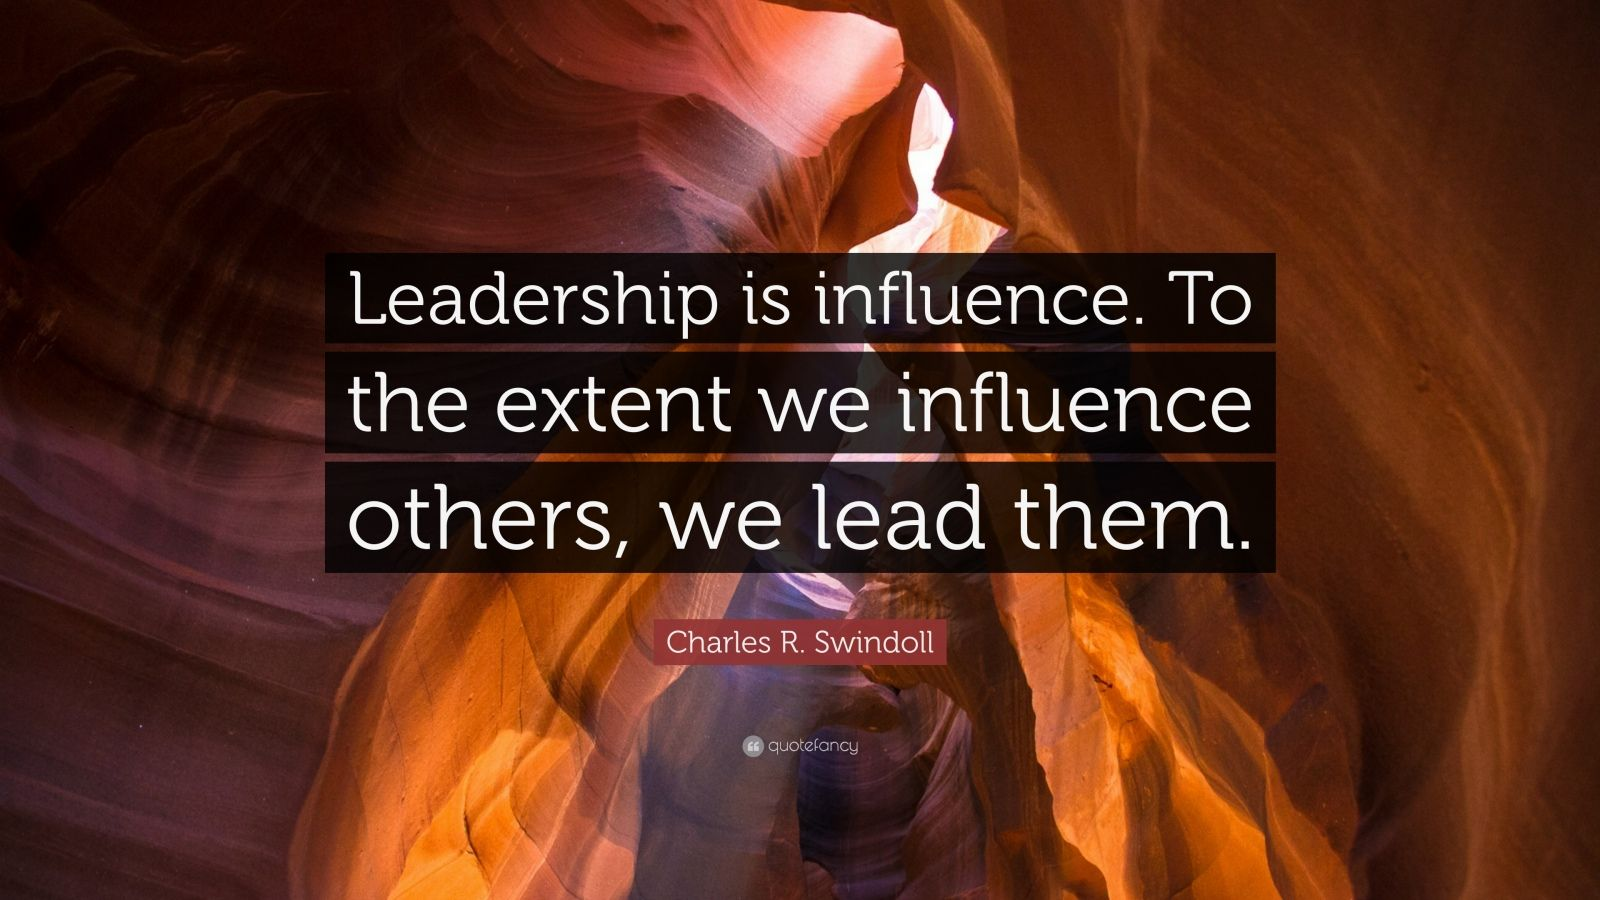 """Charles R. Swindoll Quote: """"Leadership is influence. To the extent we influence others, we lead them."""""""